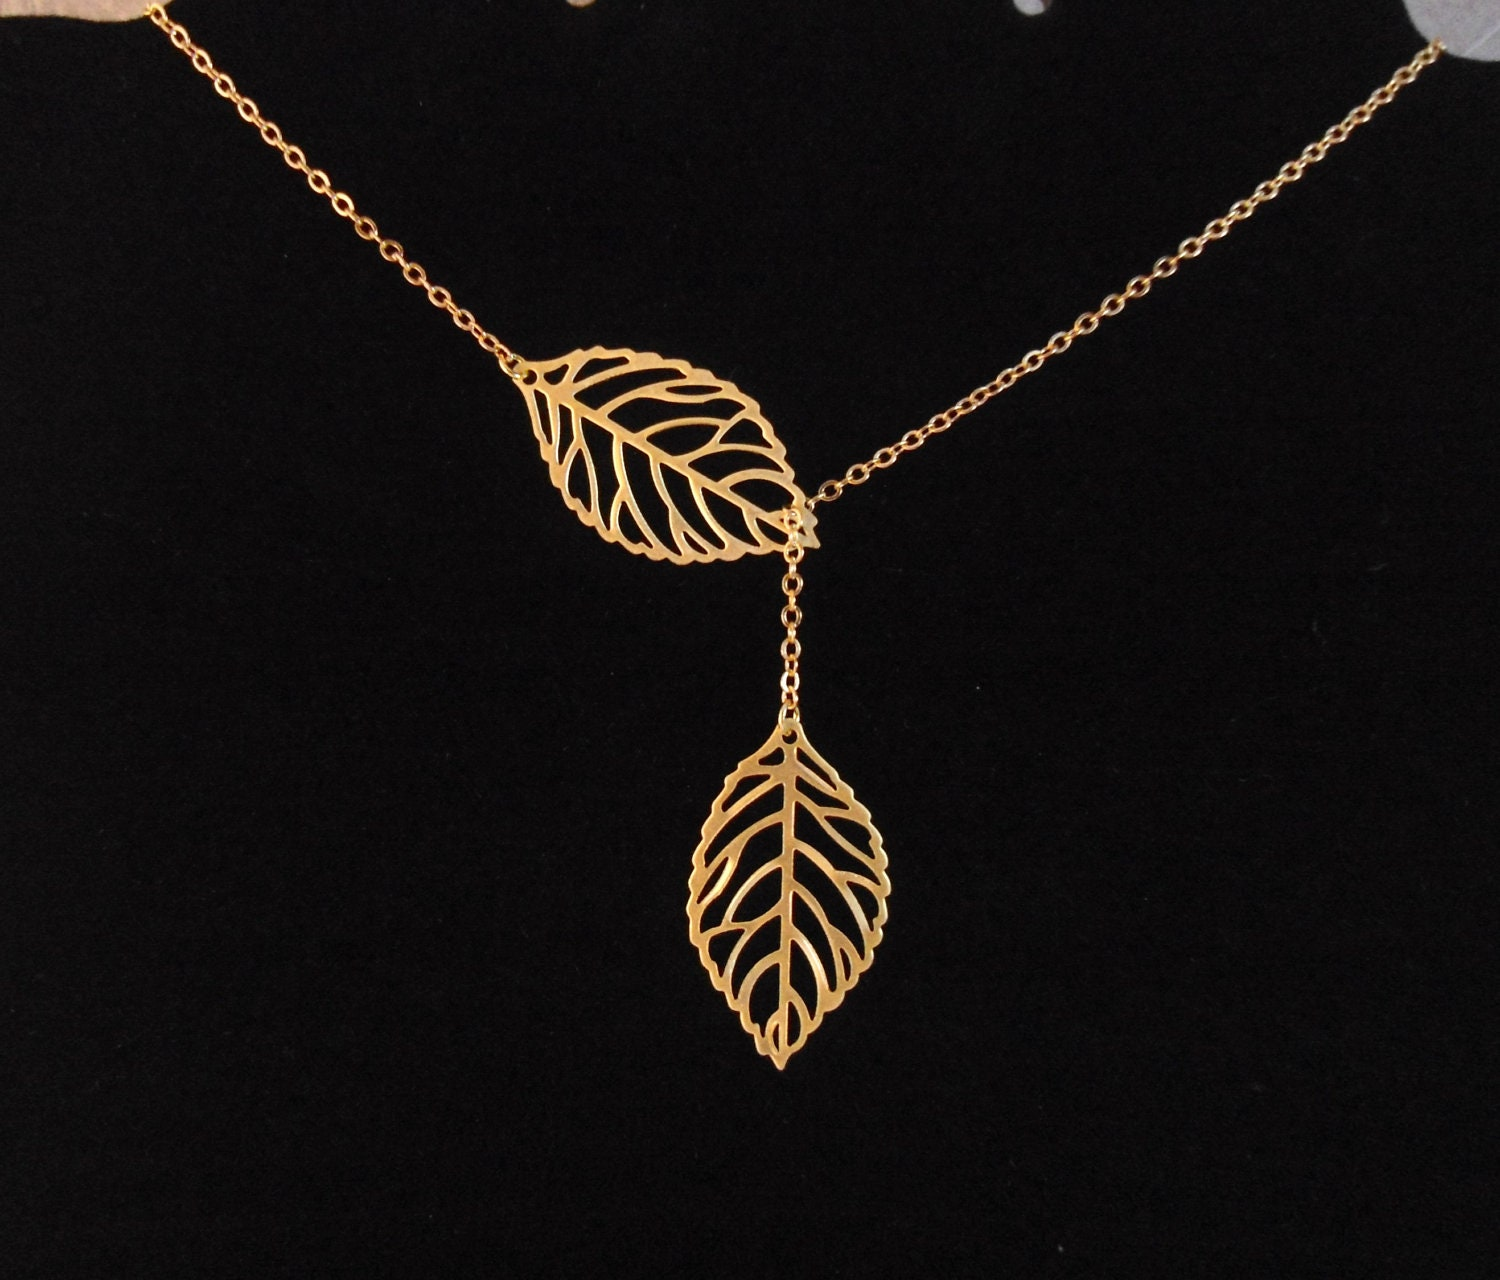 leaf gold gift p pendant love necklace xxx her